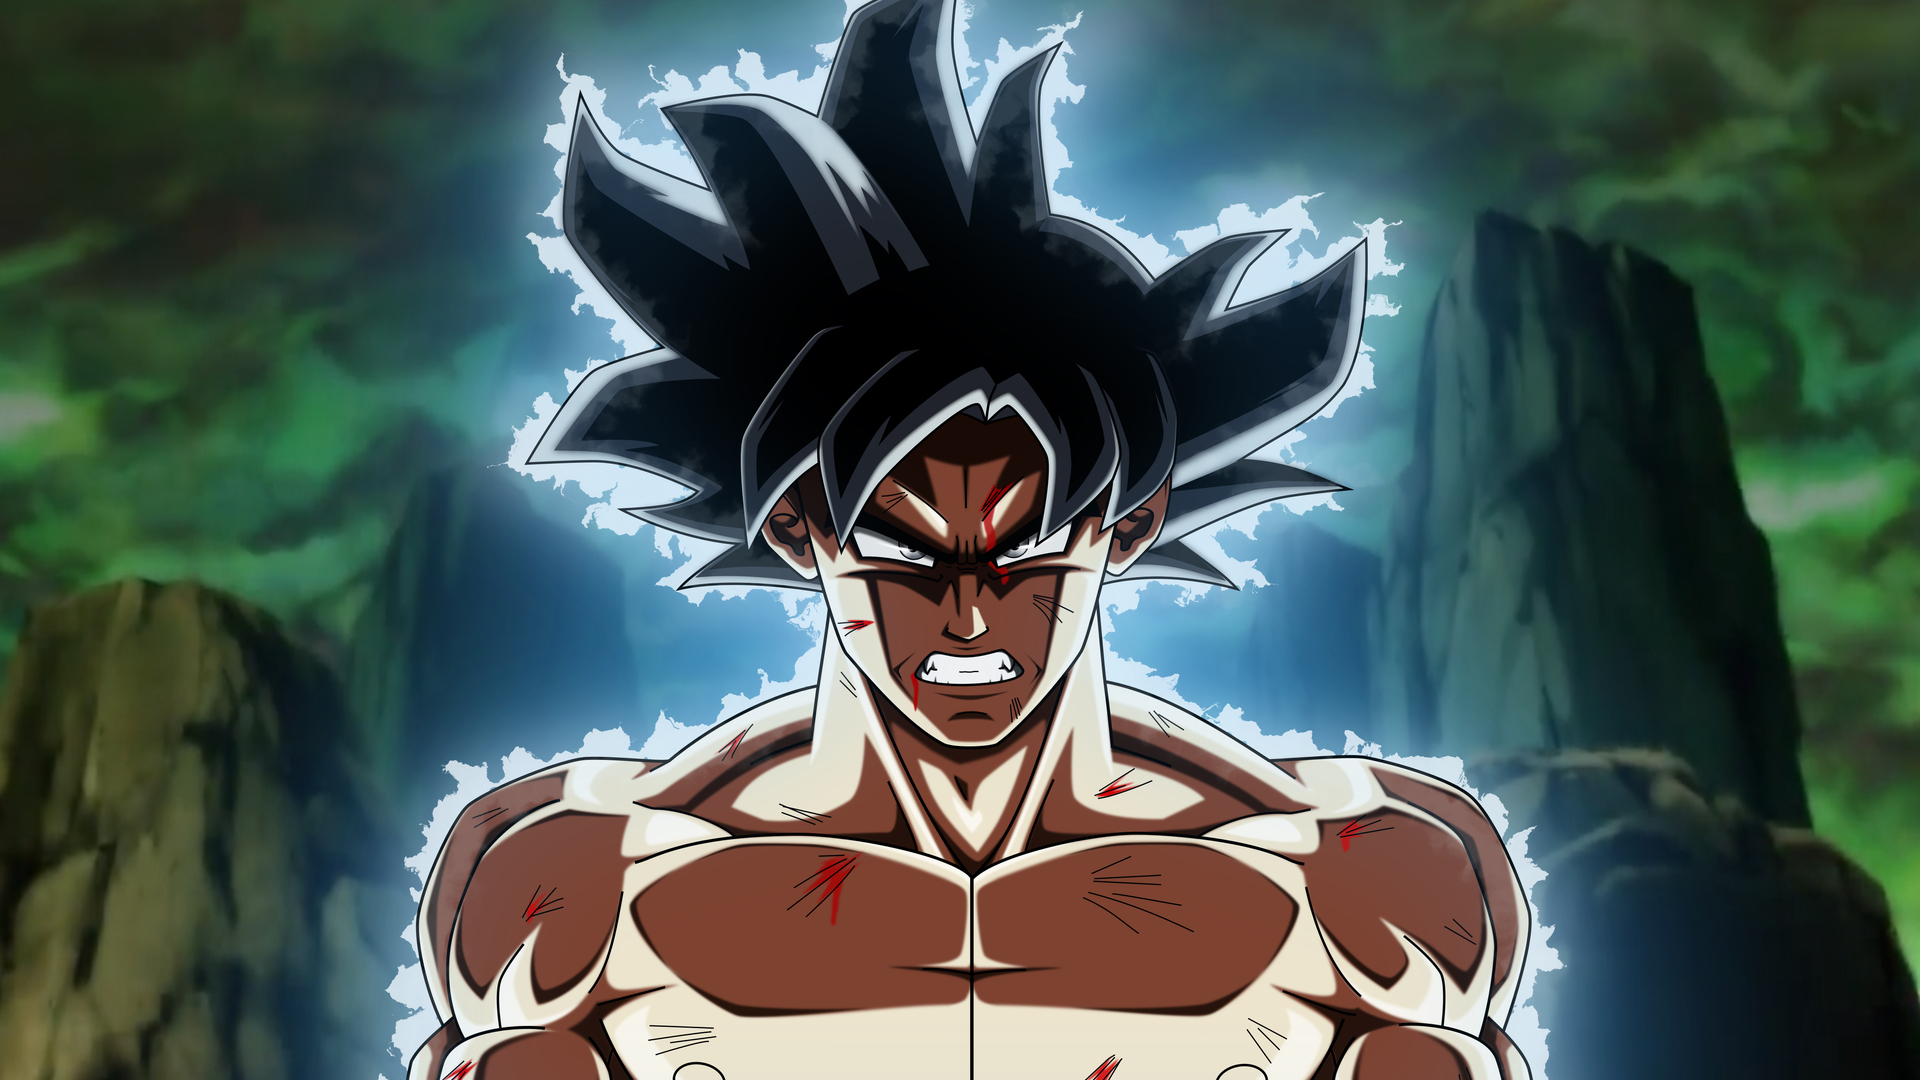 Goku Ultra Instinct Wallpaper 1080p: 1920x1080 Dragon Ball Super Goku Ultra Instinct Laptop